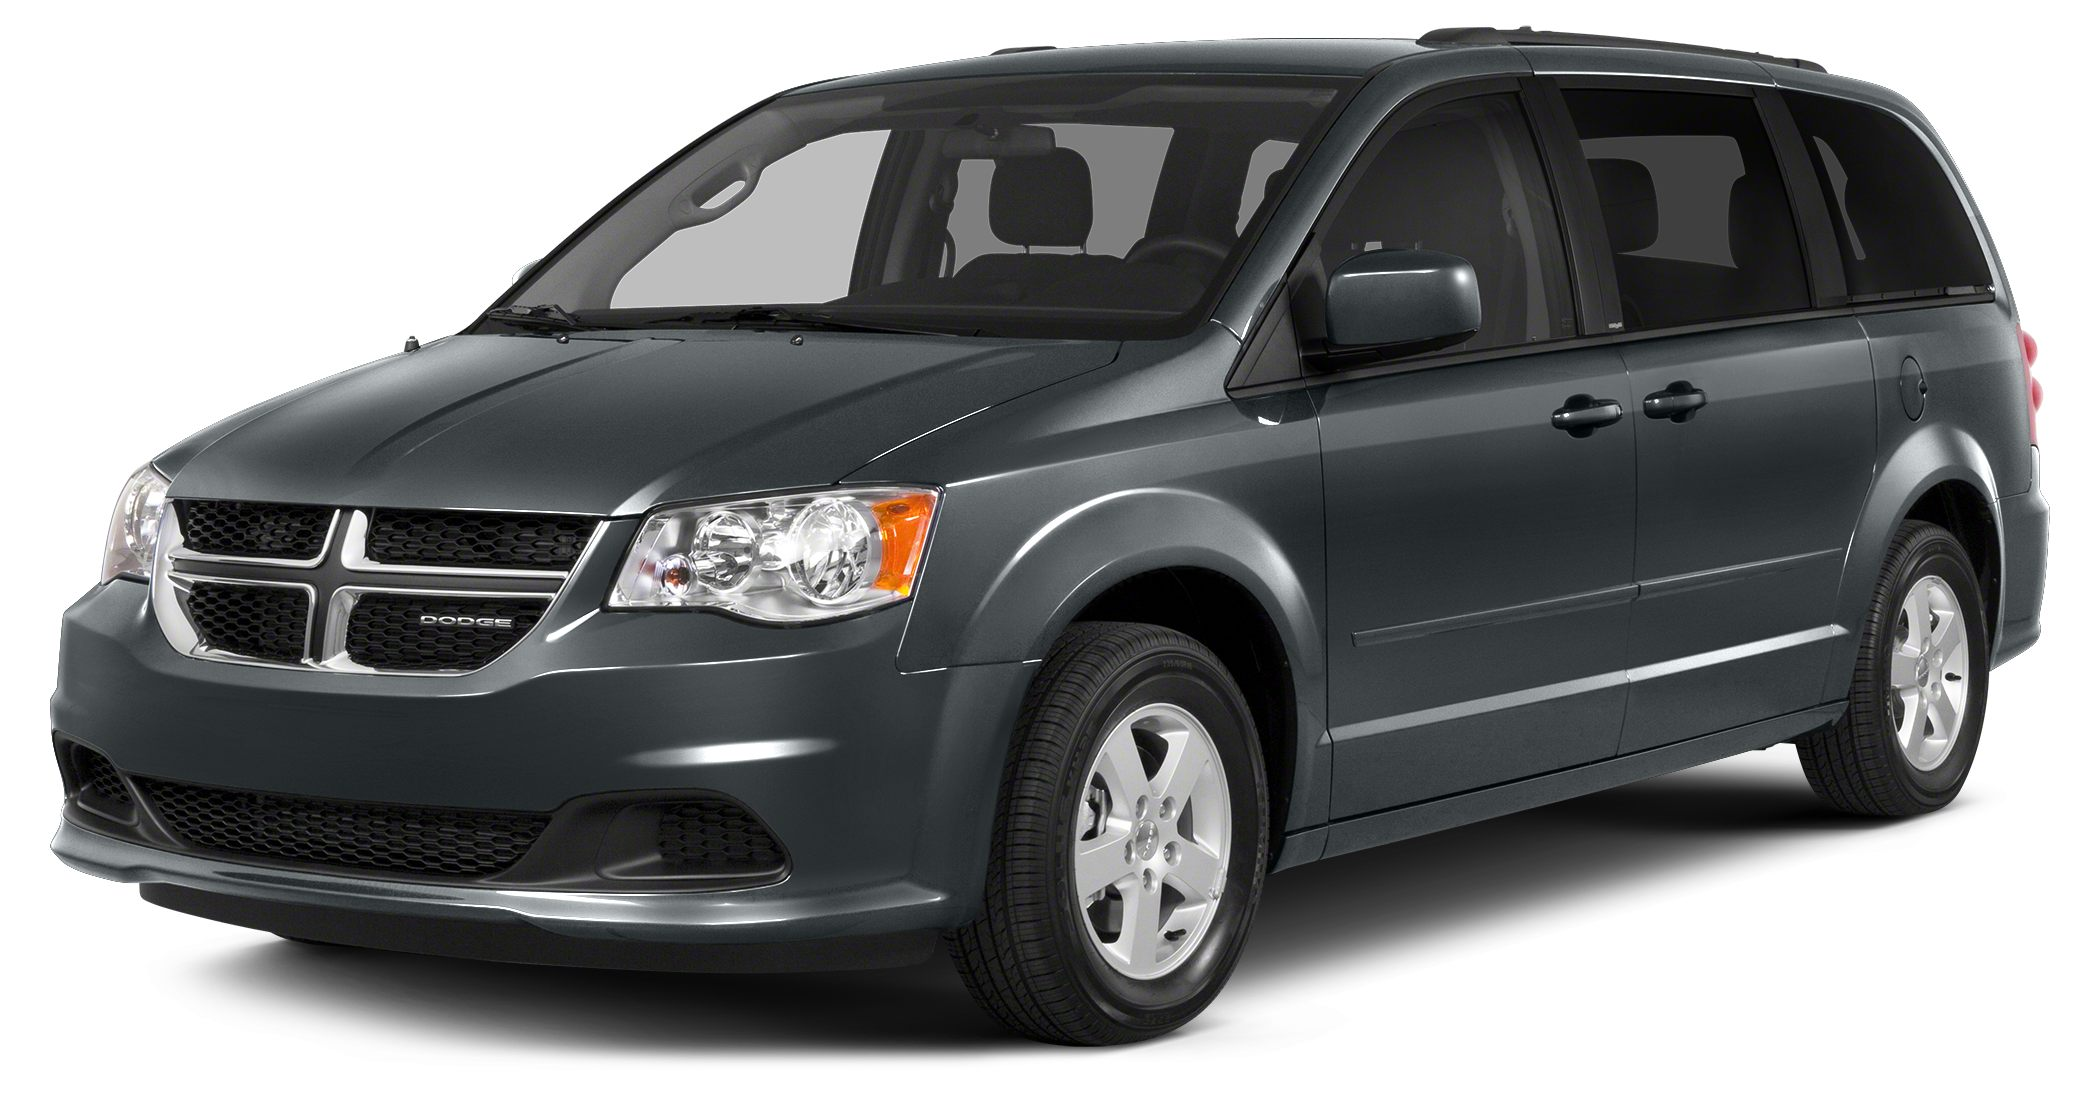 2012 Dodge Grand Caravan SEAVP SE Edition with third Row for 7 passengers Heated Mirrors 3 Zone